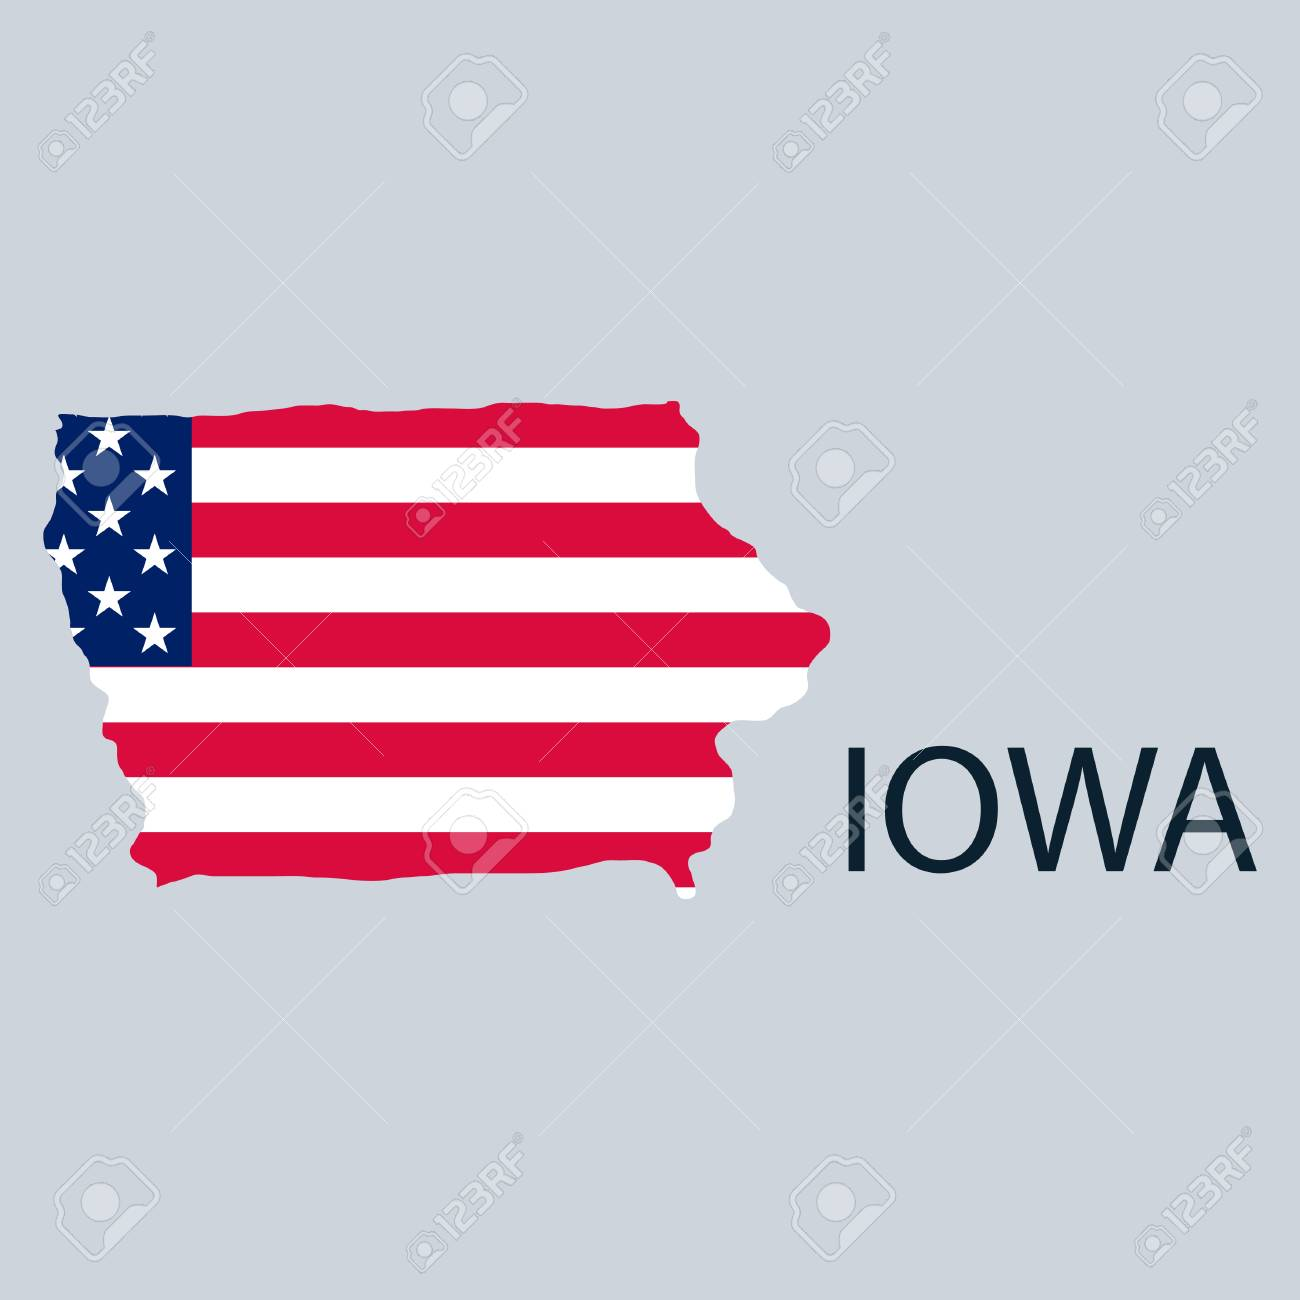 picture regarding Printable Map of Iowa called Iowa region of The united states with map. Flag print upon map of United states for..